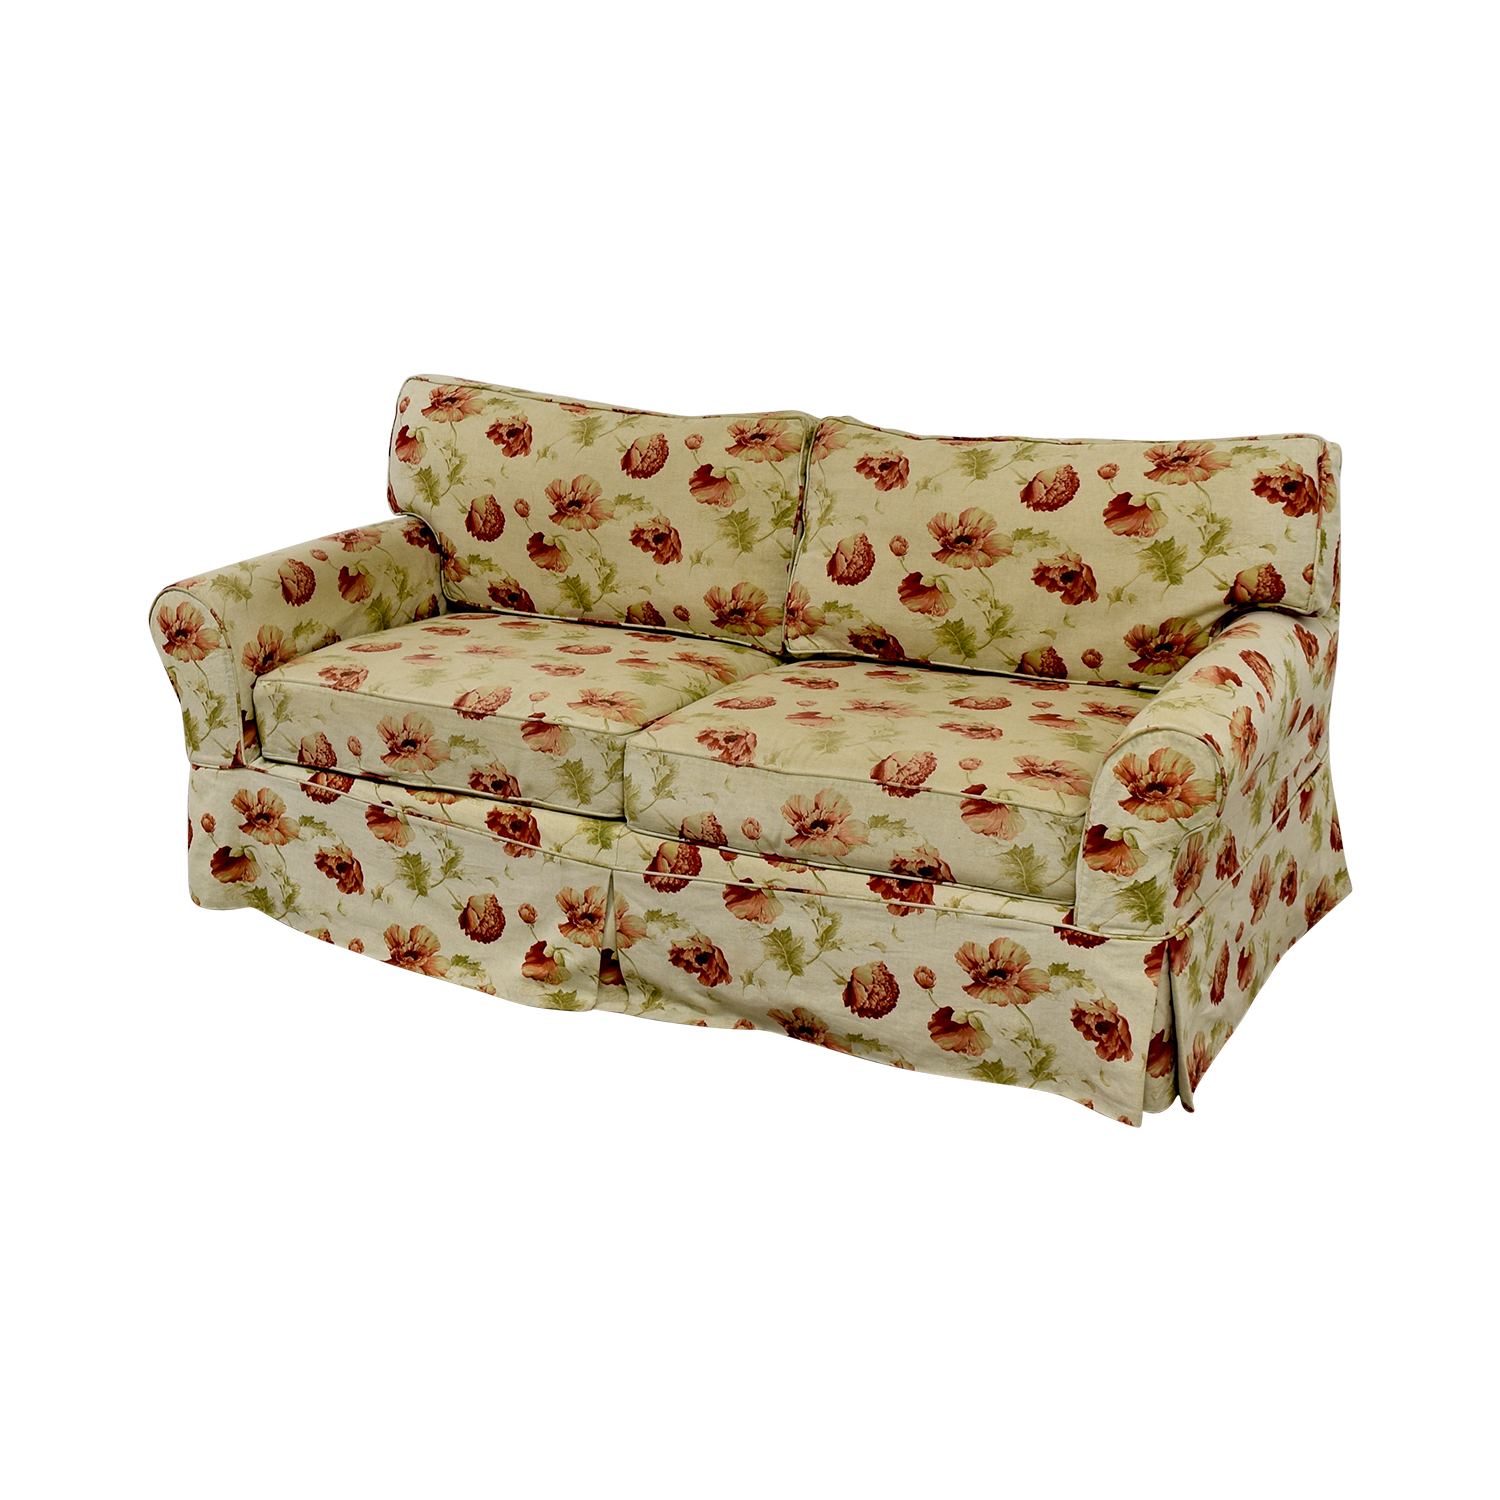 74 Off Crate Barrel Crate Barrel Slip Covered Floral Sofa Sofas